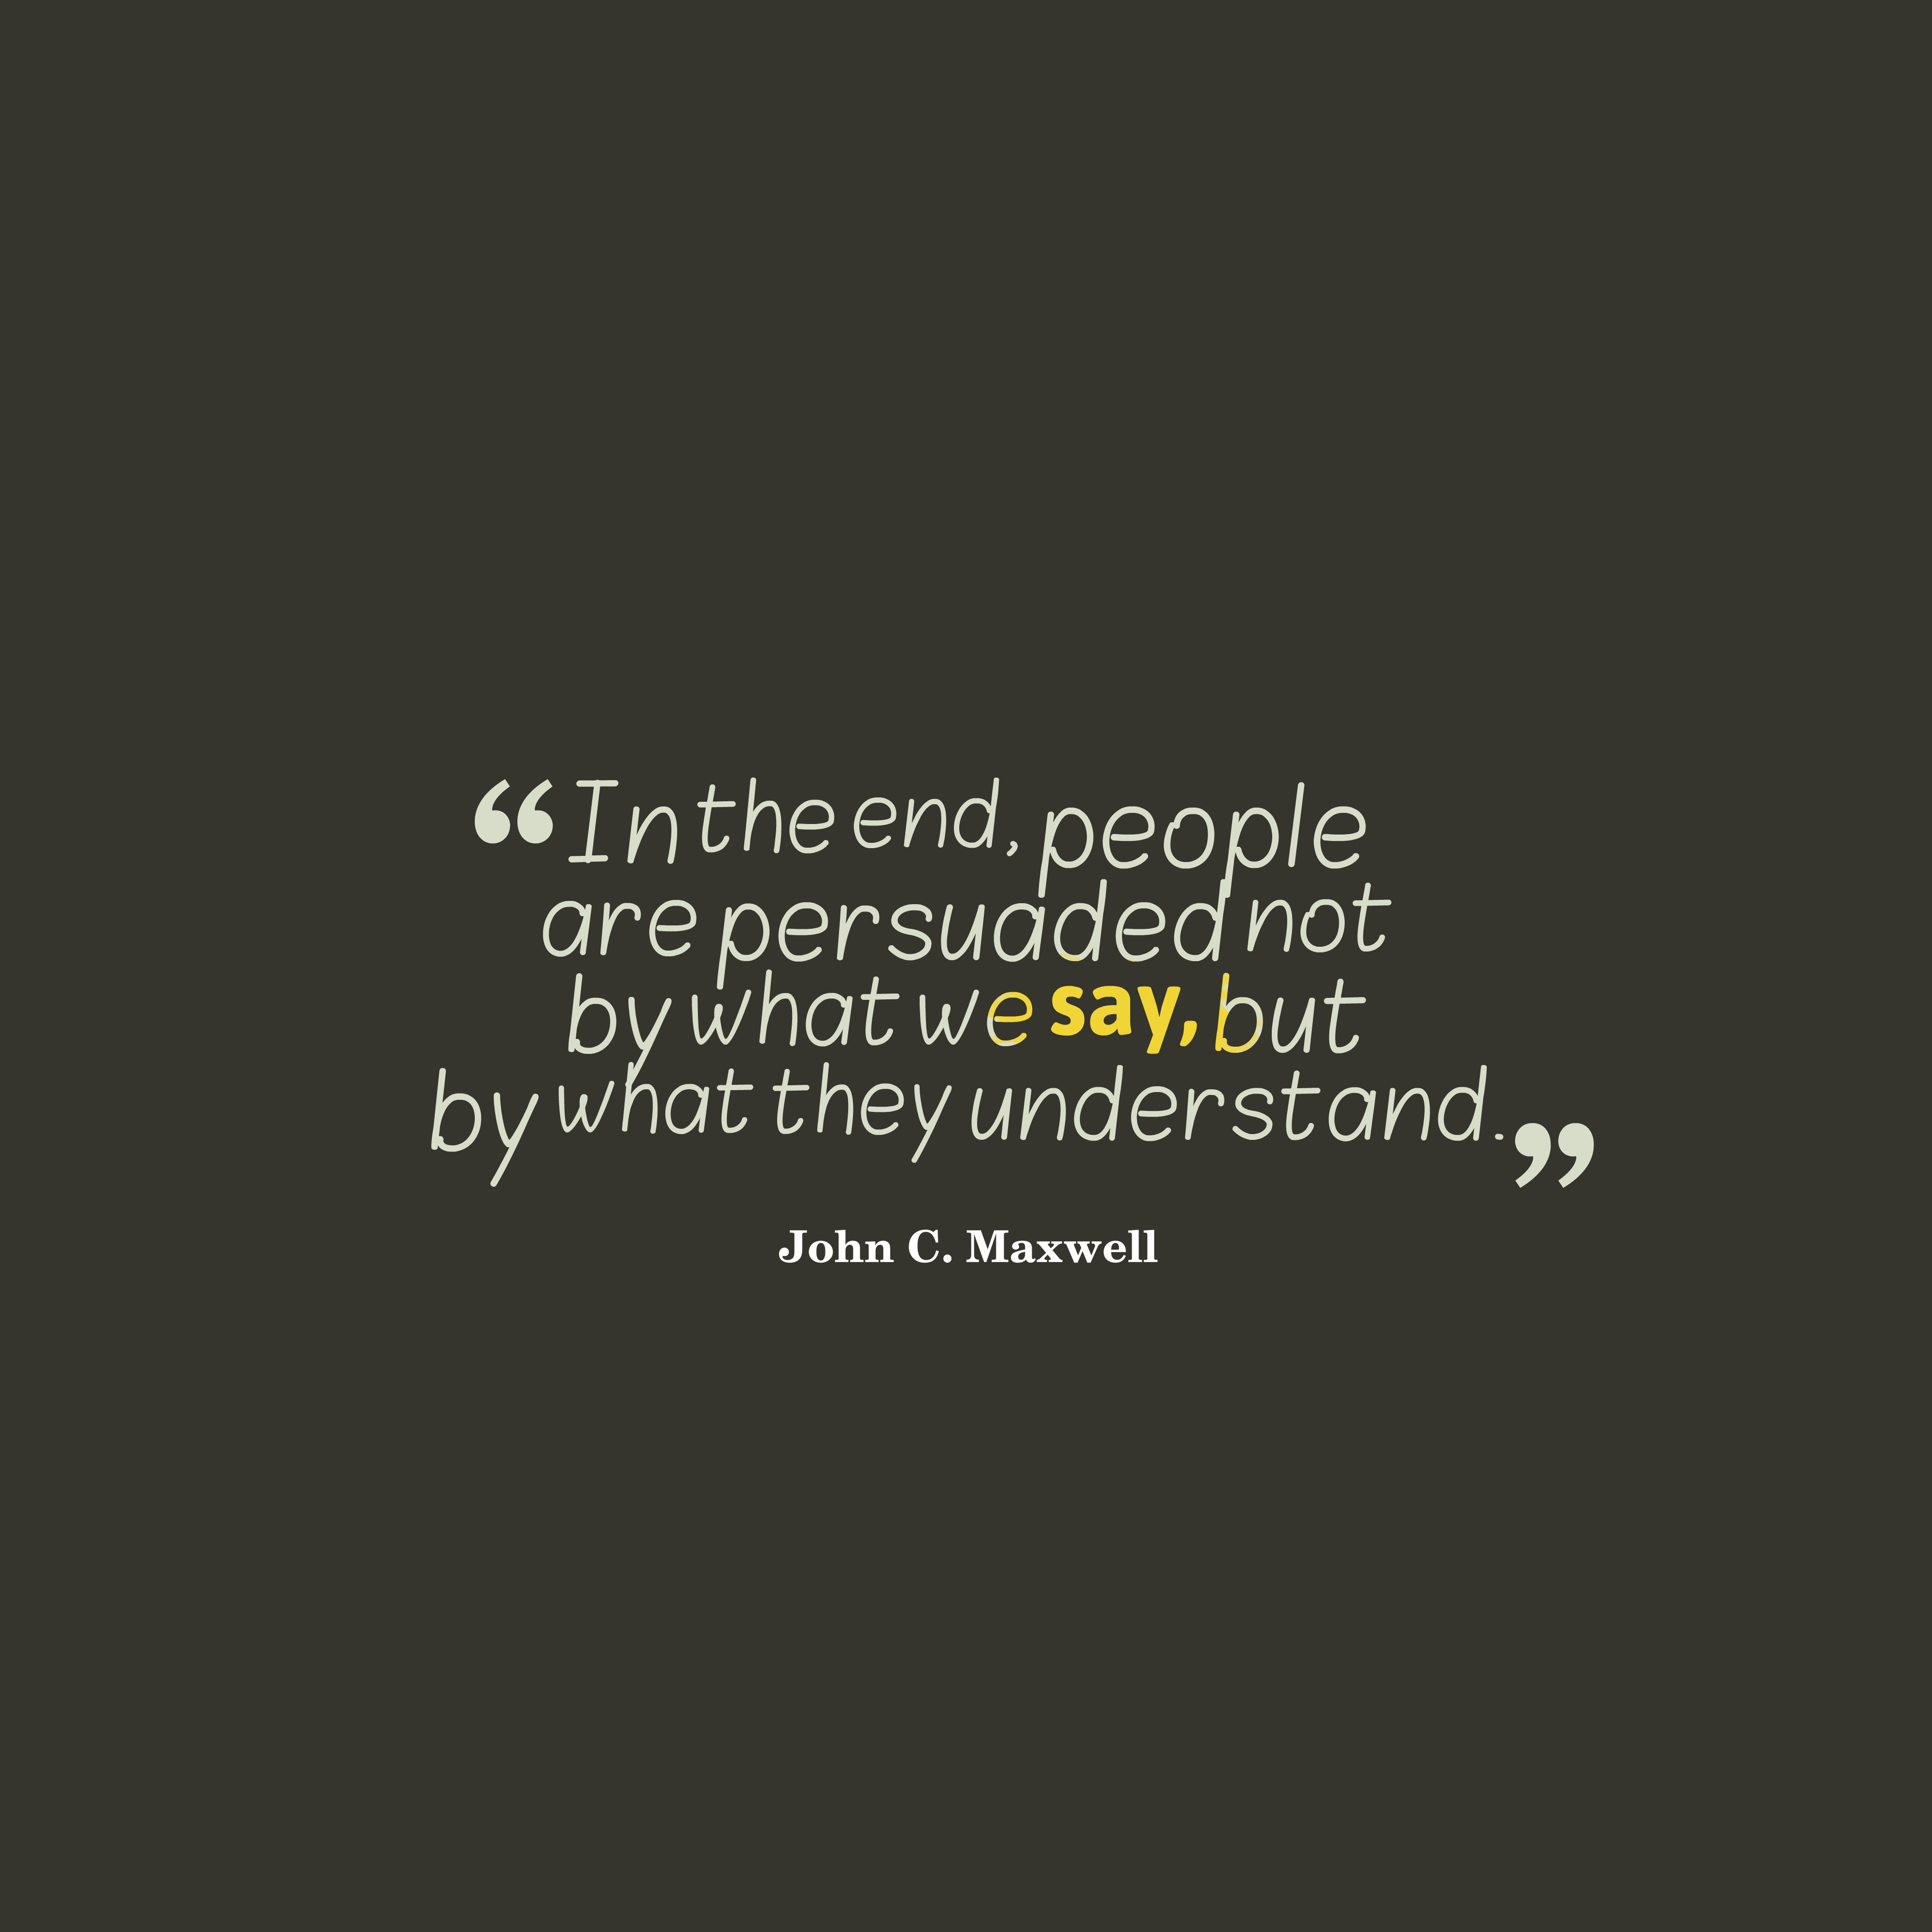 Quotes image of In the end, people are persuaded not by what we say, but by what they understand.